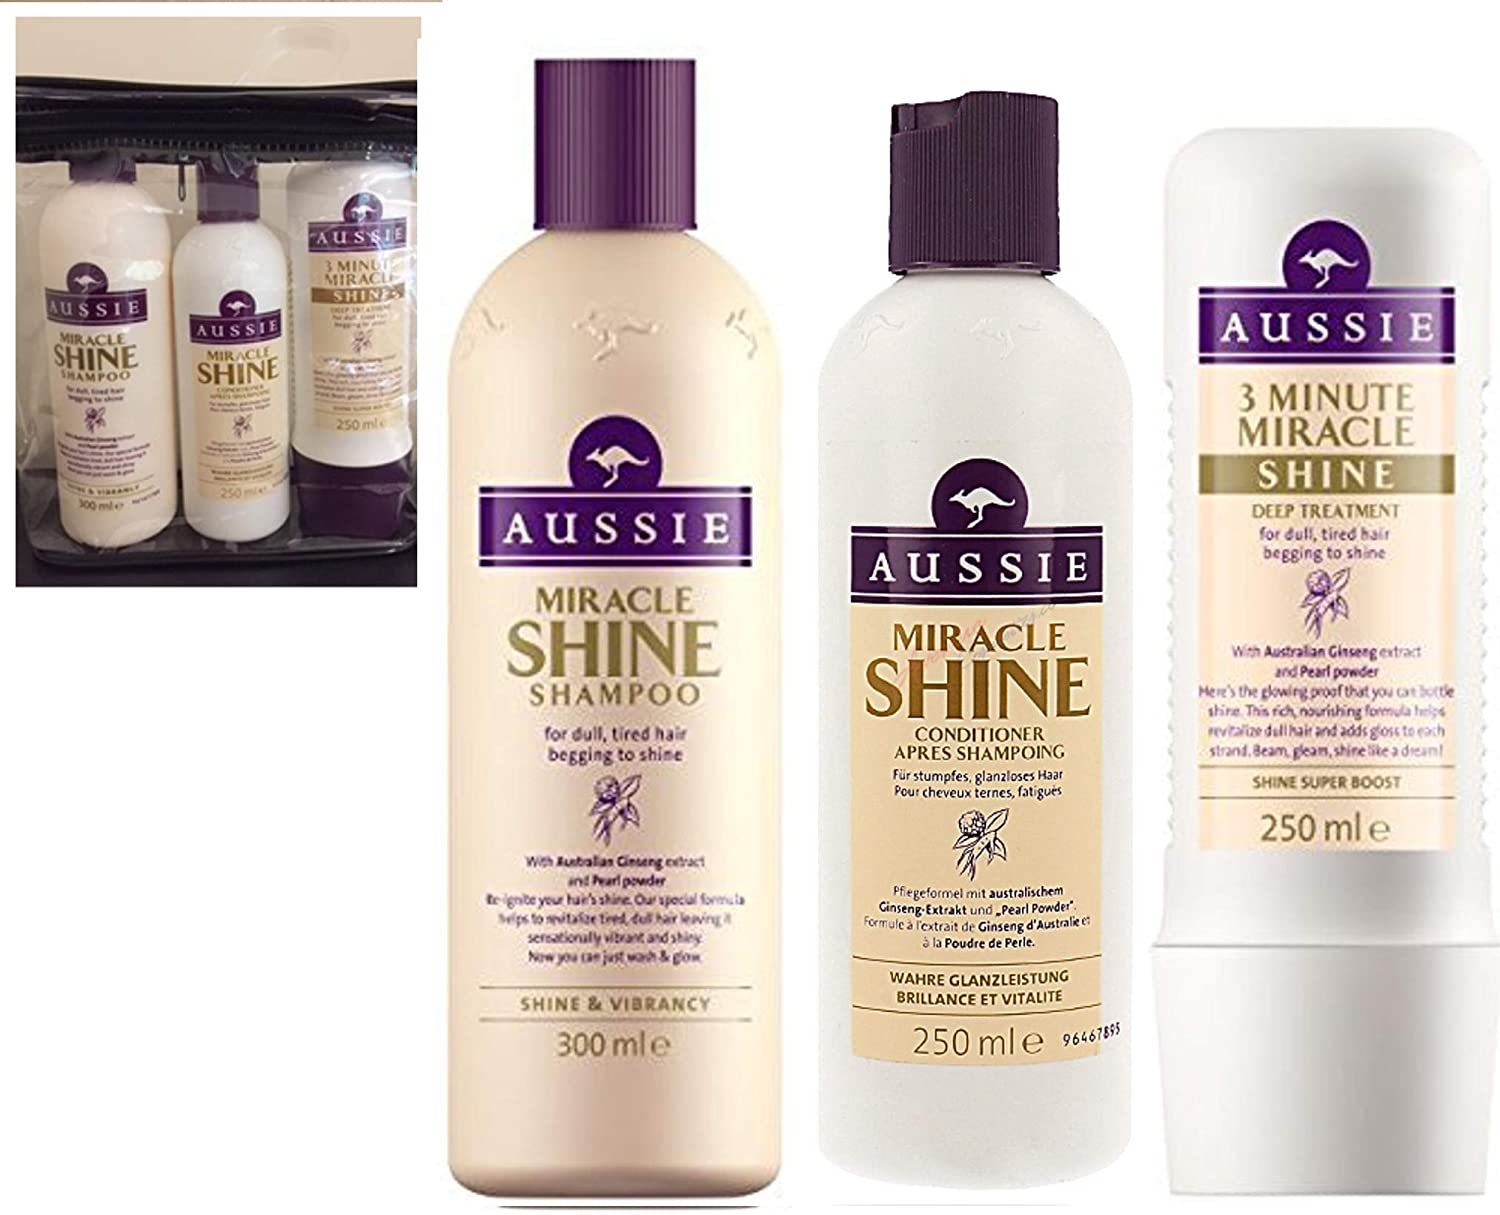 Aussie MIRACLE SHINE GIFT SET - Shampoo 300ml + Conditioner 250ml + 3 Minute Miracle Intense Conditioning Masque - All in Zipped Transparant Toiletries bag with piped edges - PERFECT GIFT